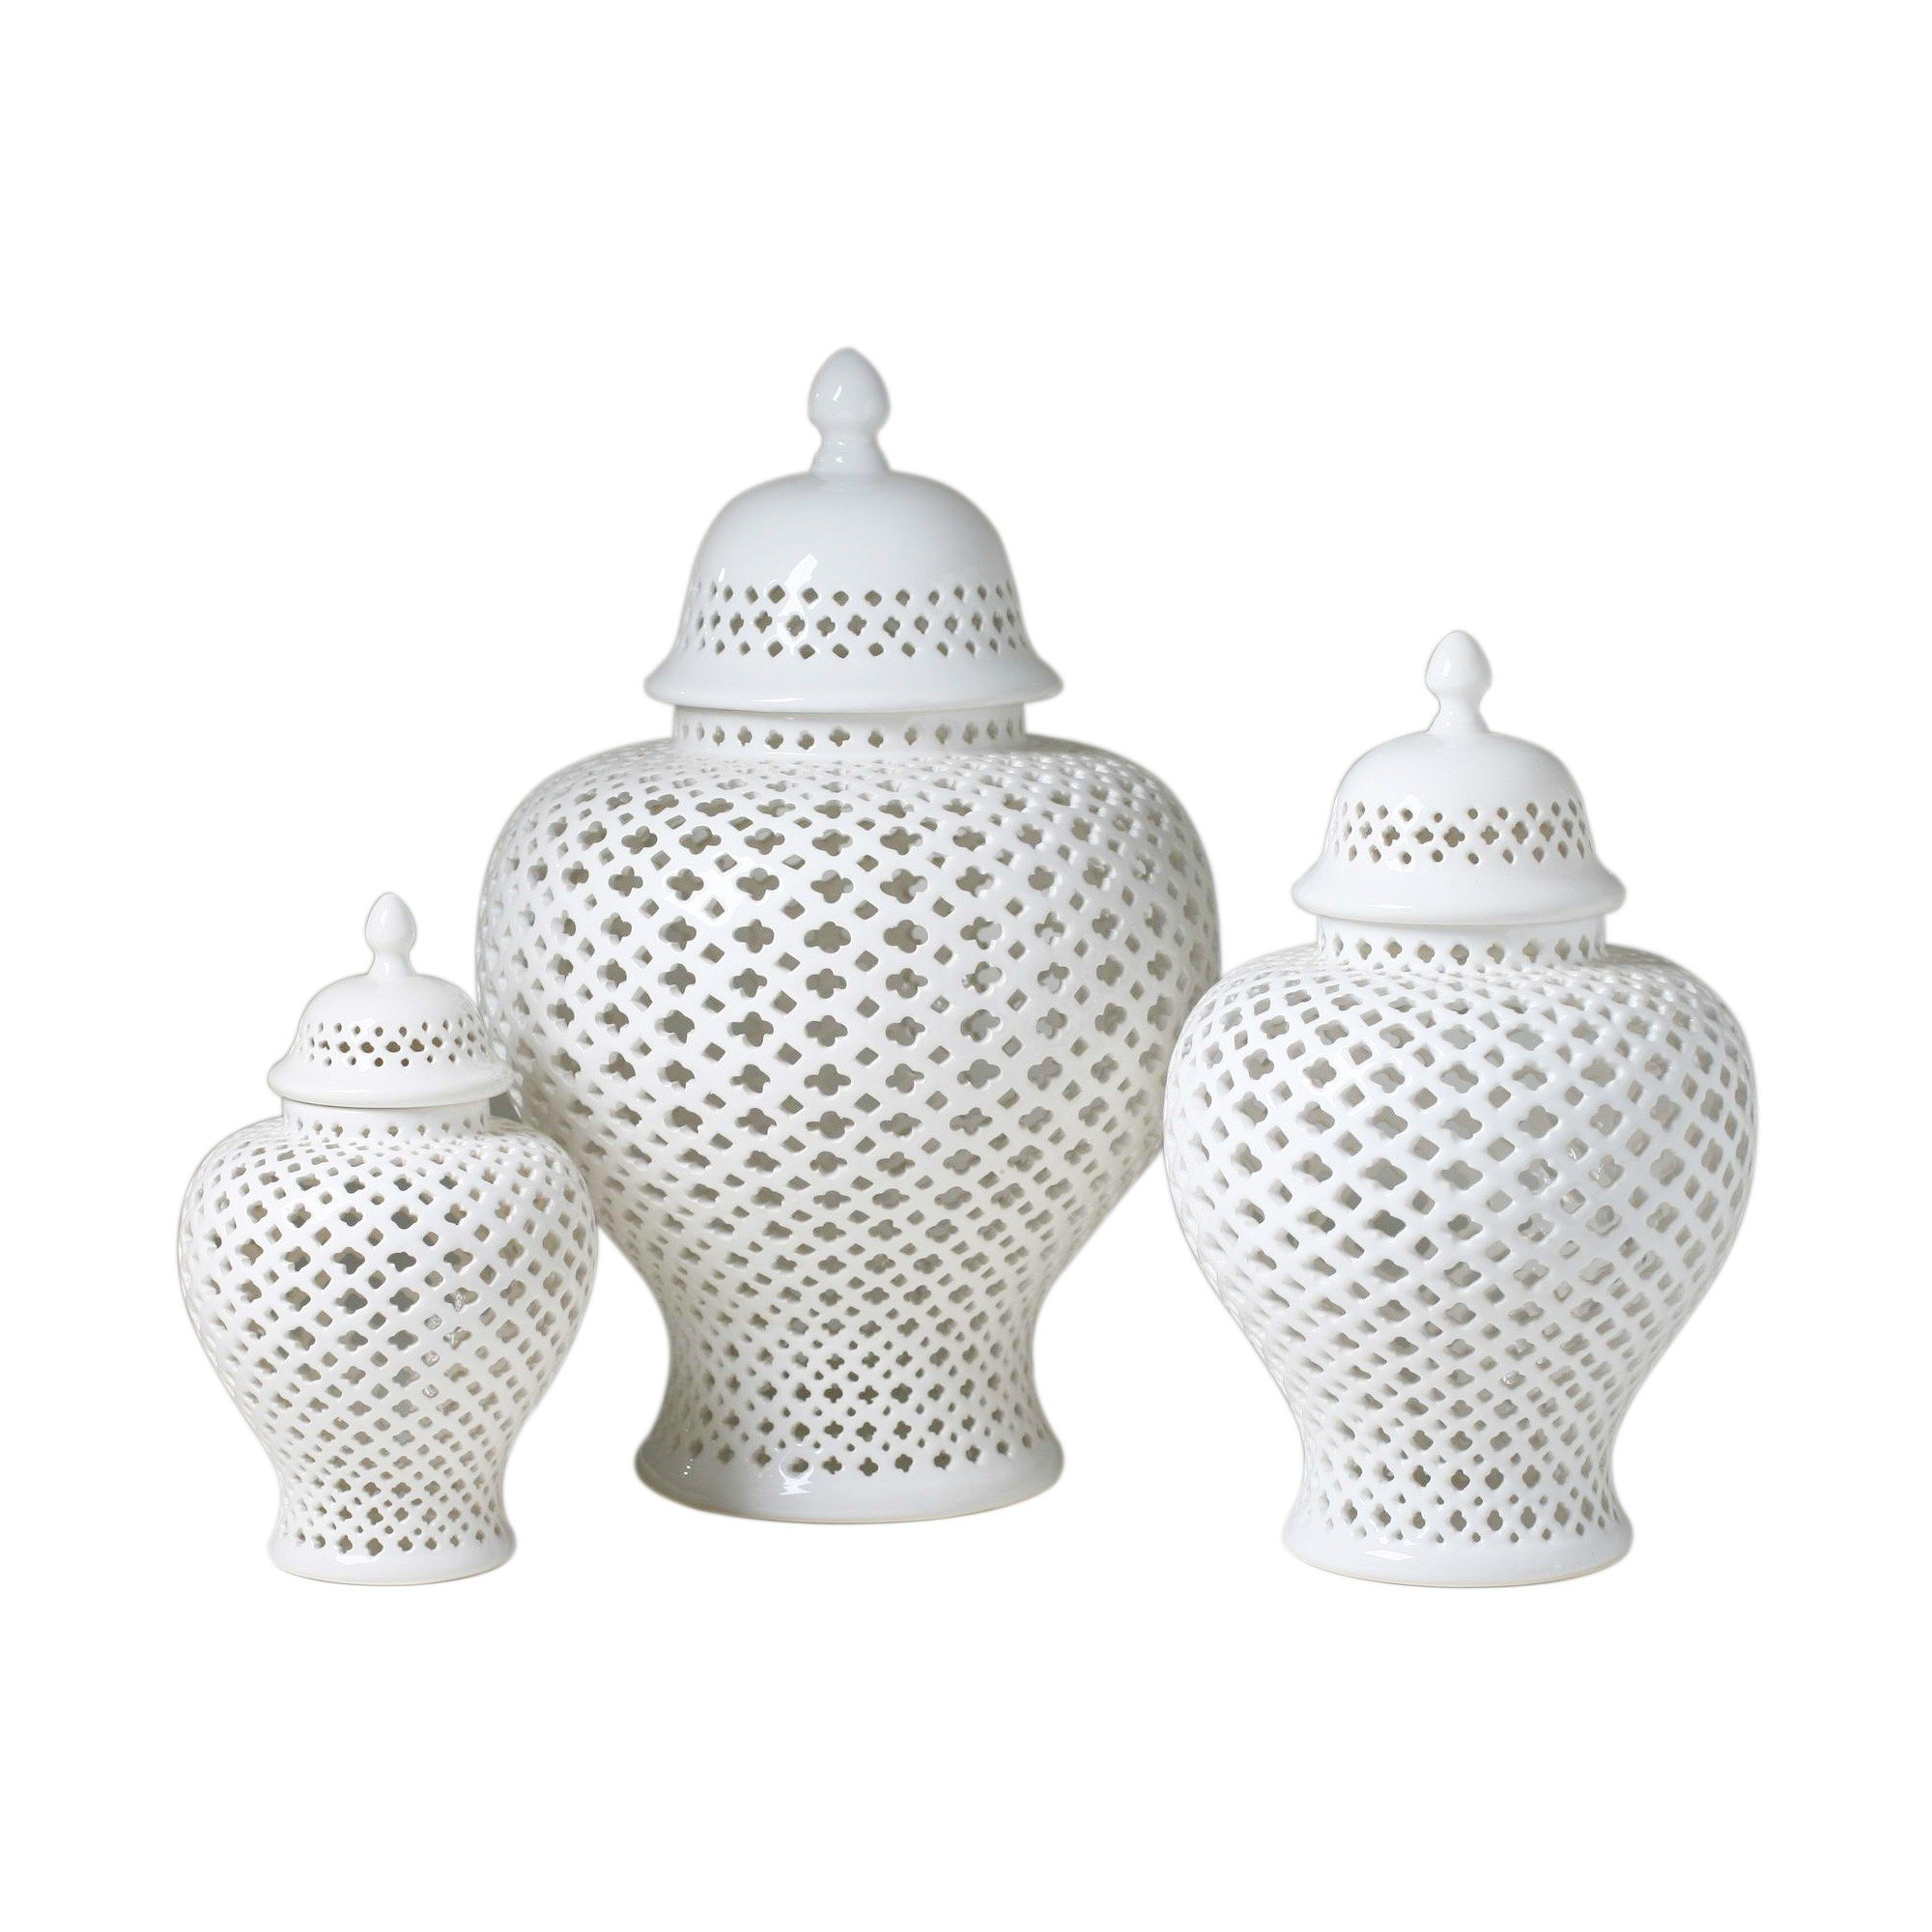 Legends of Asia Asian Traditional Chinese White Lattice Ginger Jar with Lid (Medium) by Legends of Asia (Image #1)